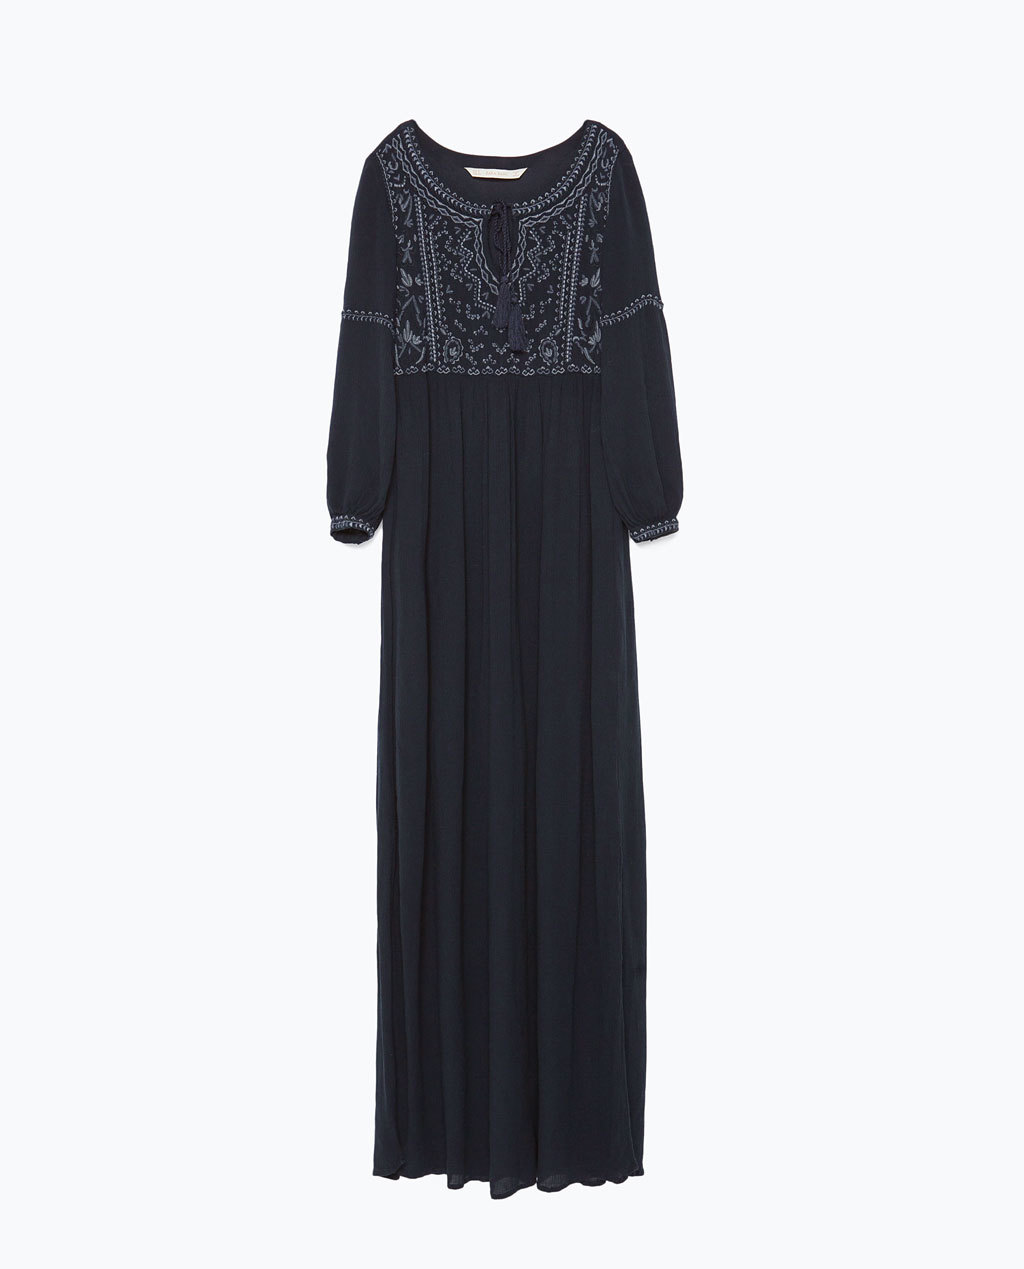 Embroidered Long Dress - fit: loose; style: maxi dress; length: ankle length; neckline: asymmetric; predominant colour: black; occasions: casual, evening; fibres: viscose/rayon - 100%; sleeve length: long sleeve; sleeve style: standard; pattern type: fabric; pattern: patterned/print; texture group: woven light midweight; embellishment: embroidered; season: s/s 2015; wardrobe: highlight; embellishment location: bust